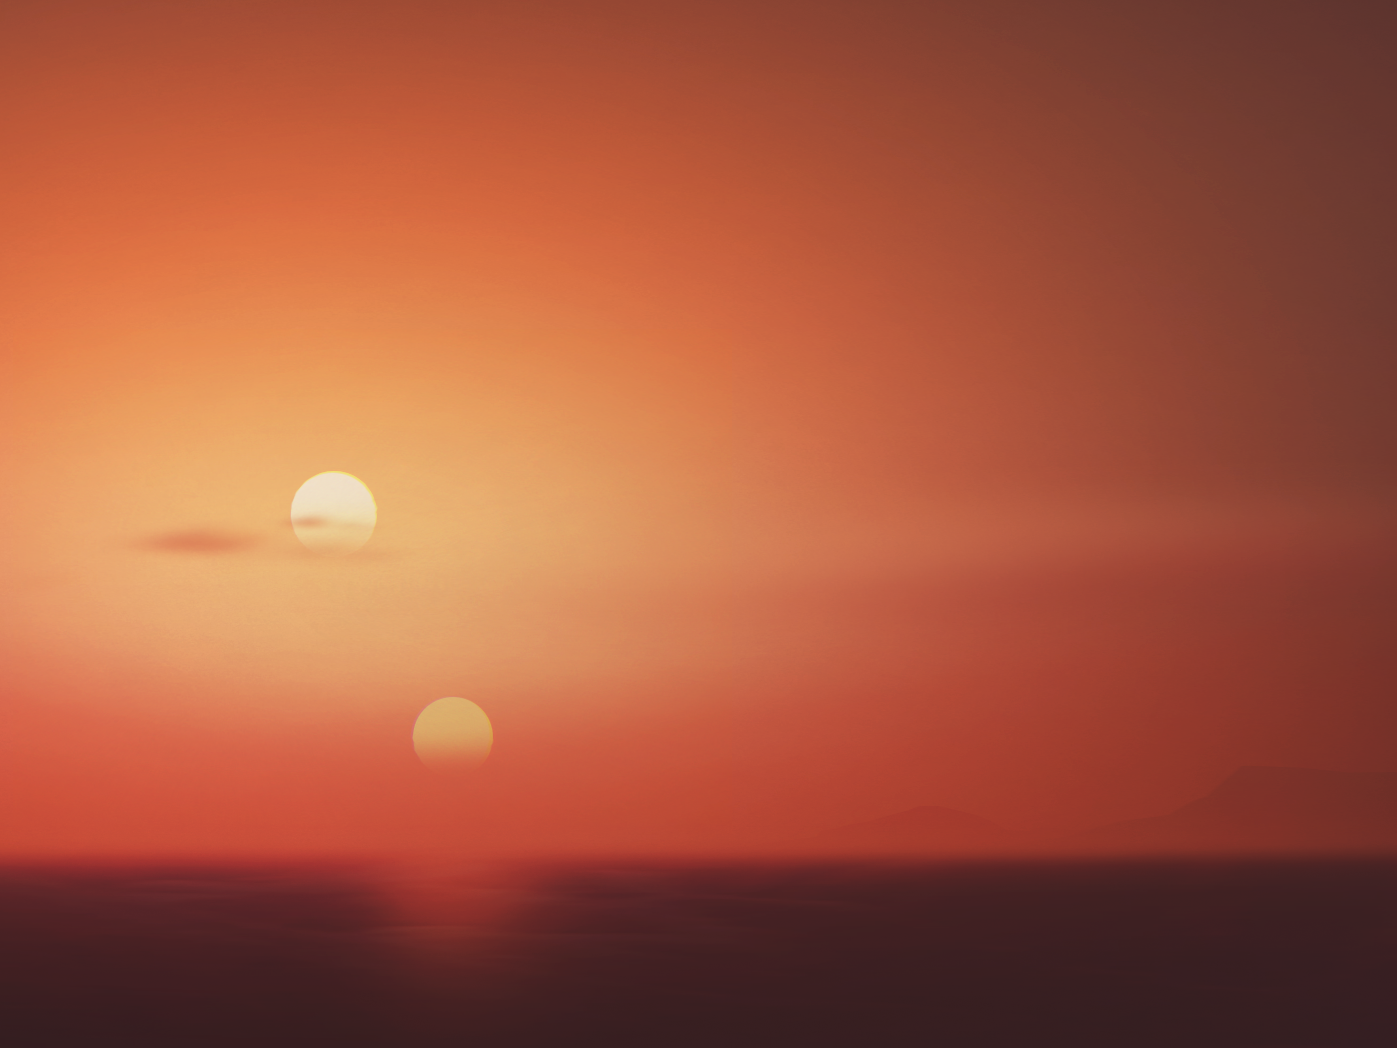 Binary Sunset Luke S View By Louis Coyle On Dribbble